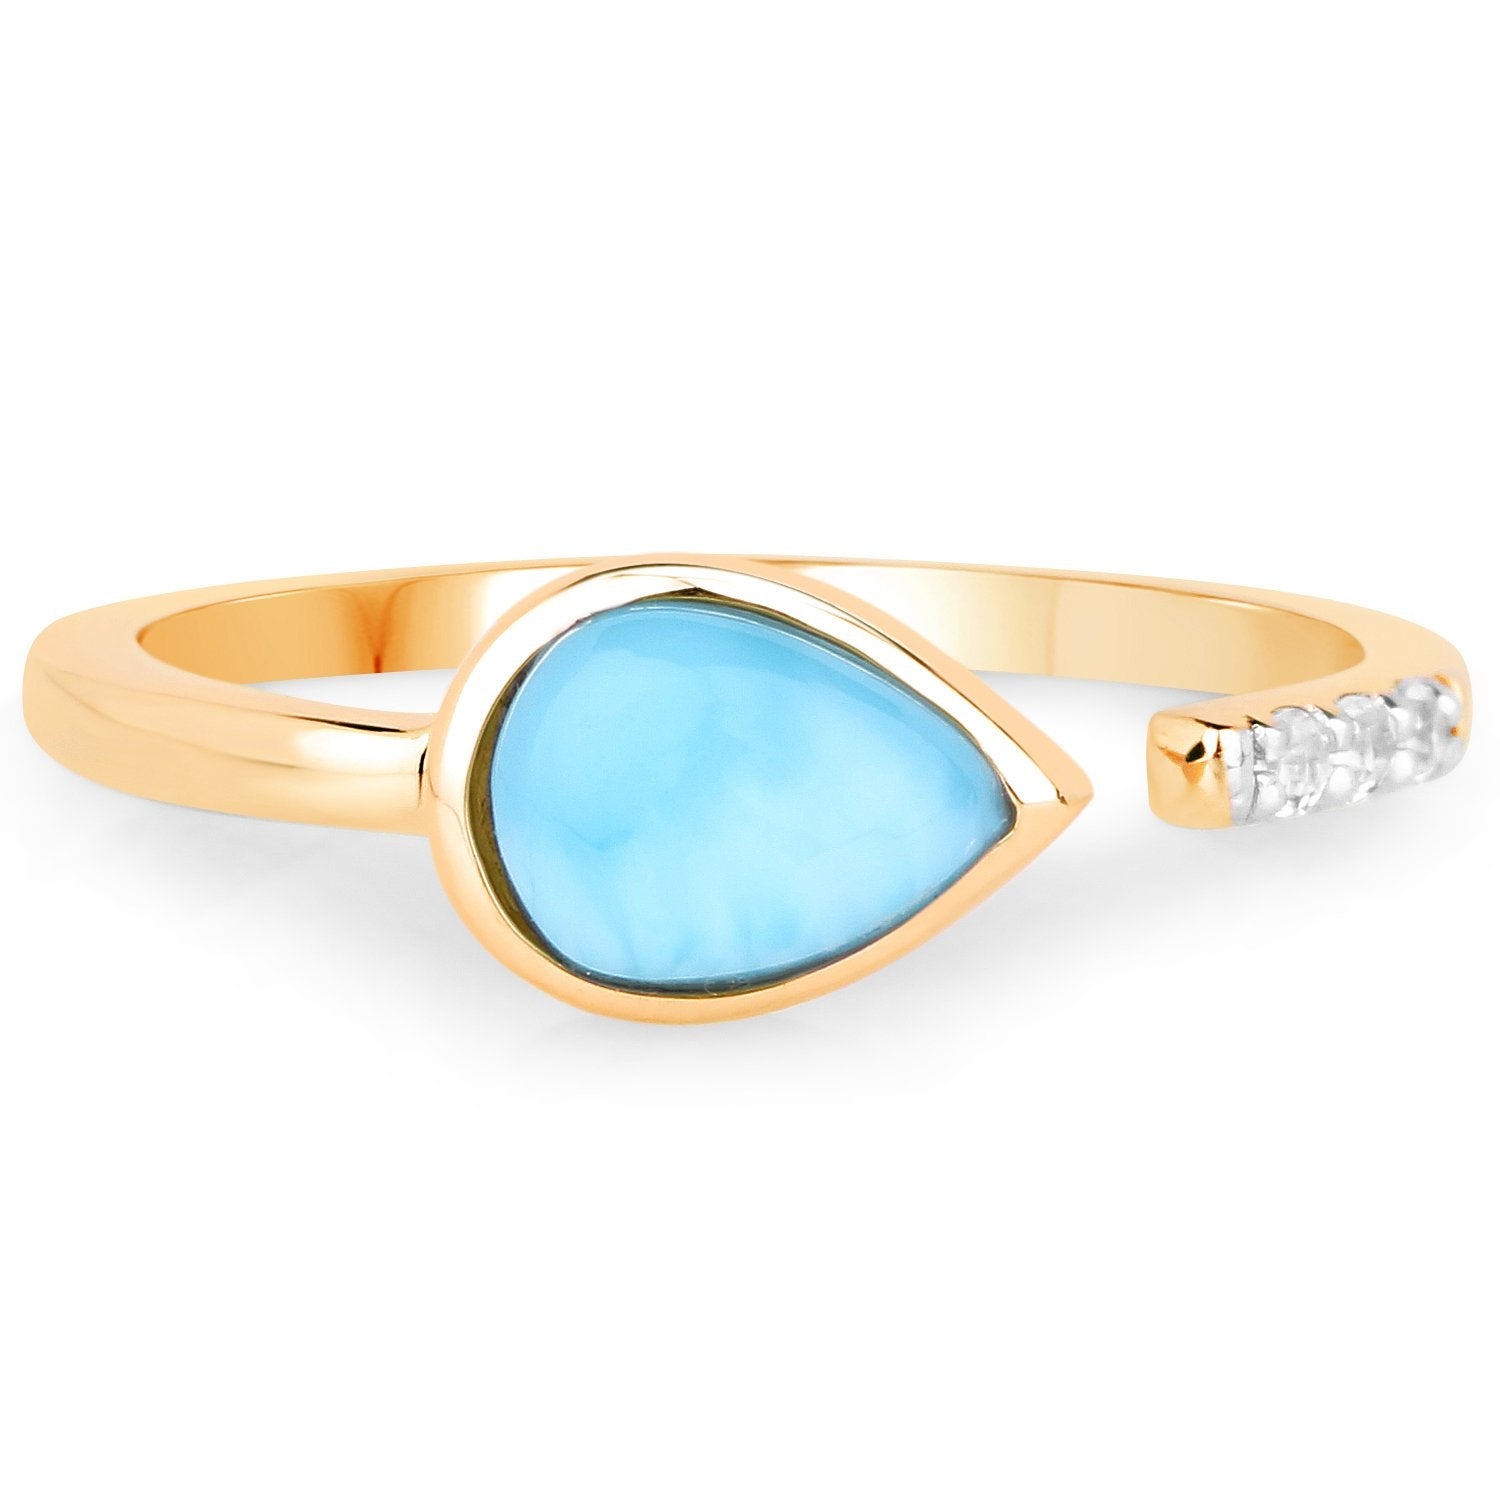 LoveHuang 1.26 Carats Genuine Larimar and White Topaz Ring Solid .925 Sterling Silver With 18KT Yellow Gold Plating